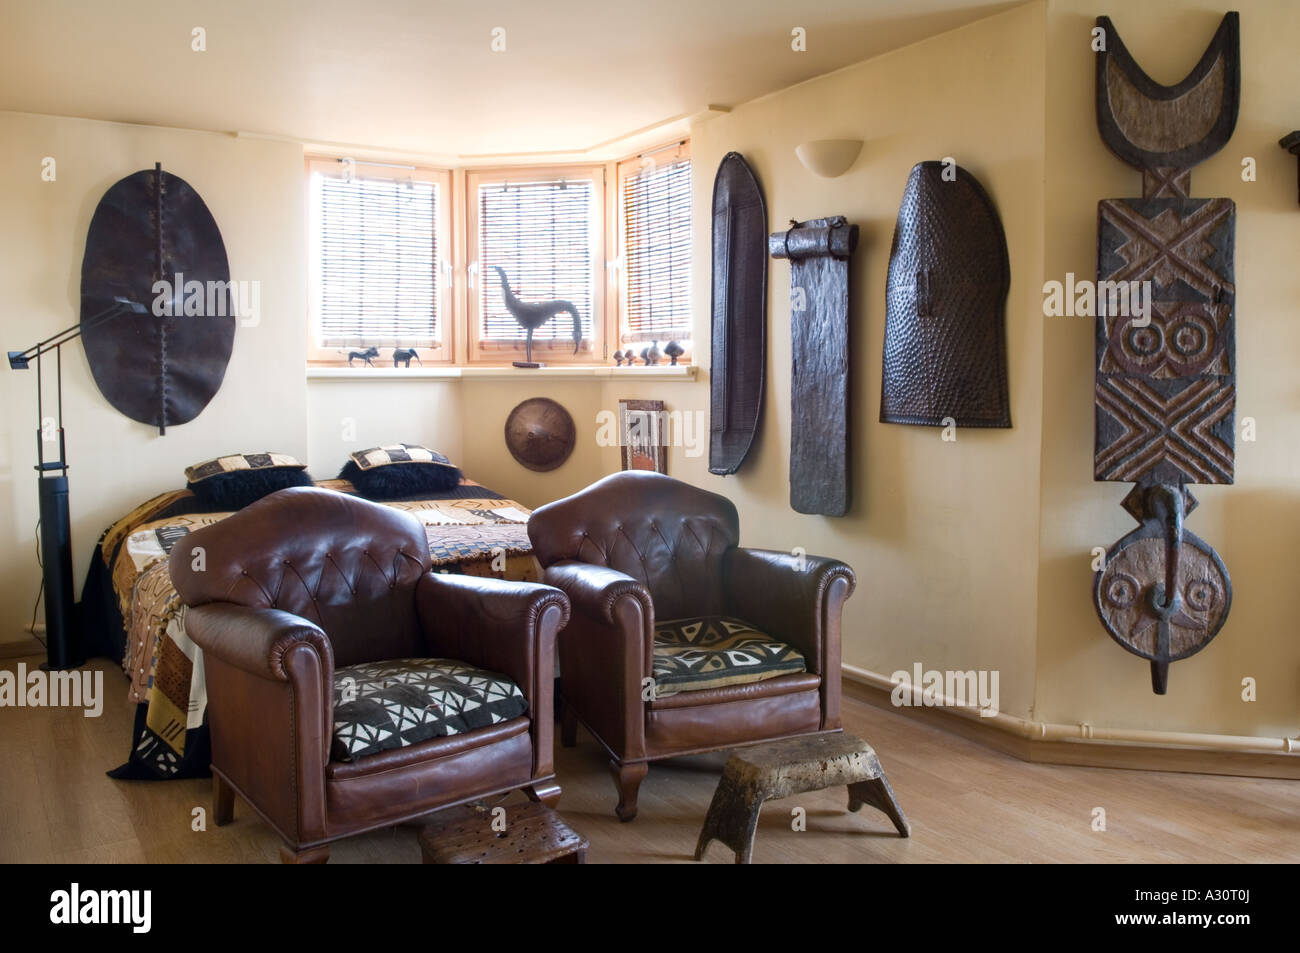 Leather Chair Stock Photos & Leather Chair Stock Images - Alamy